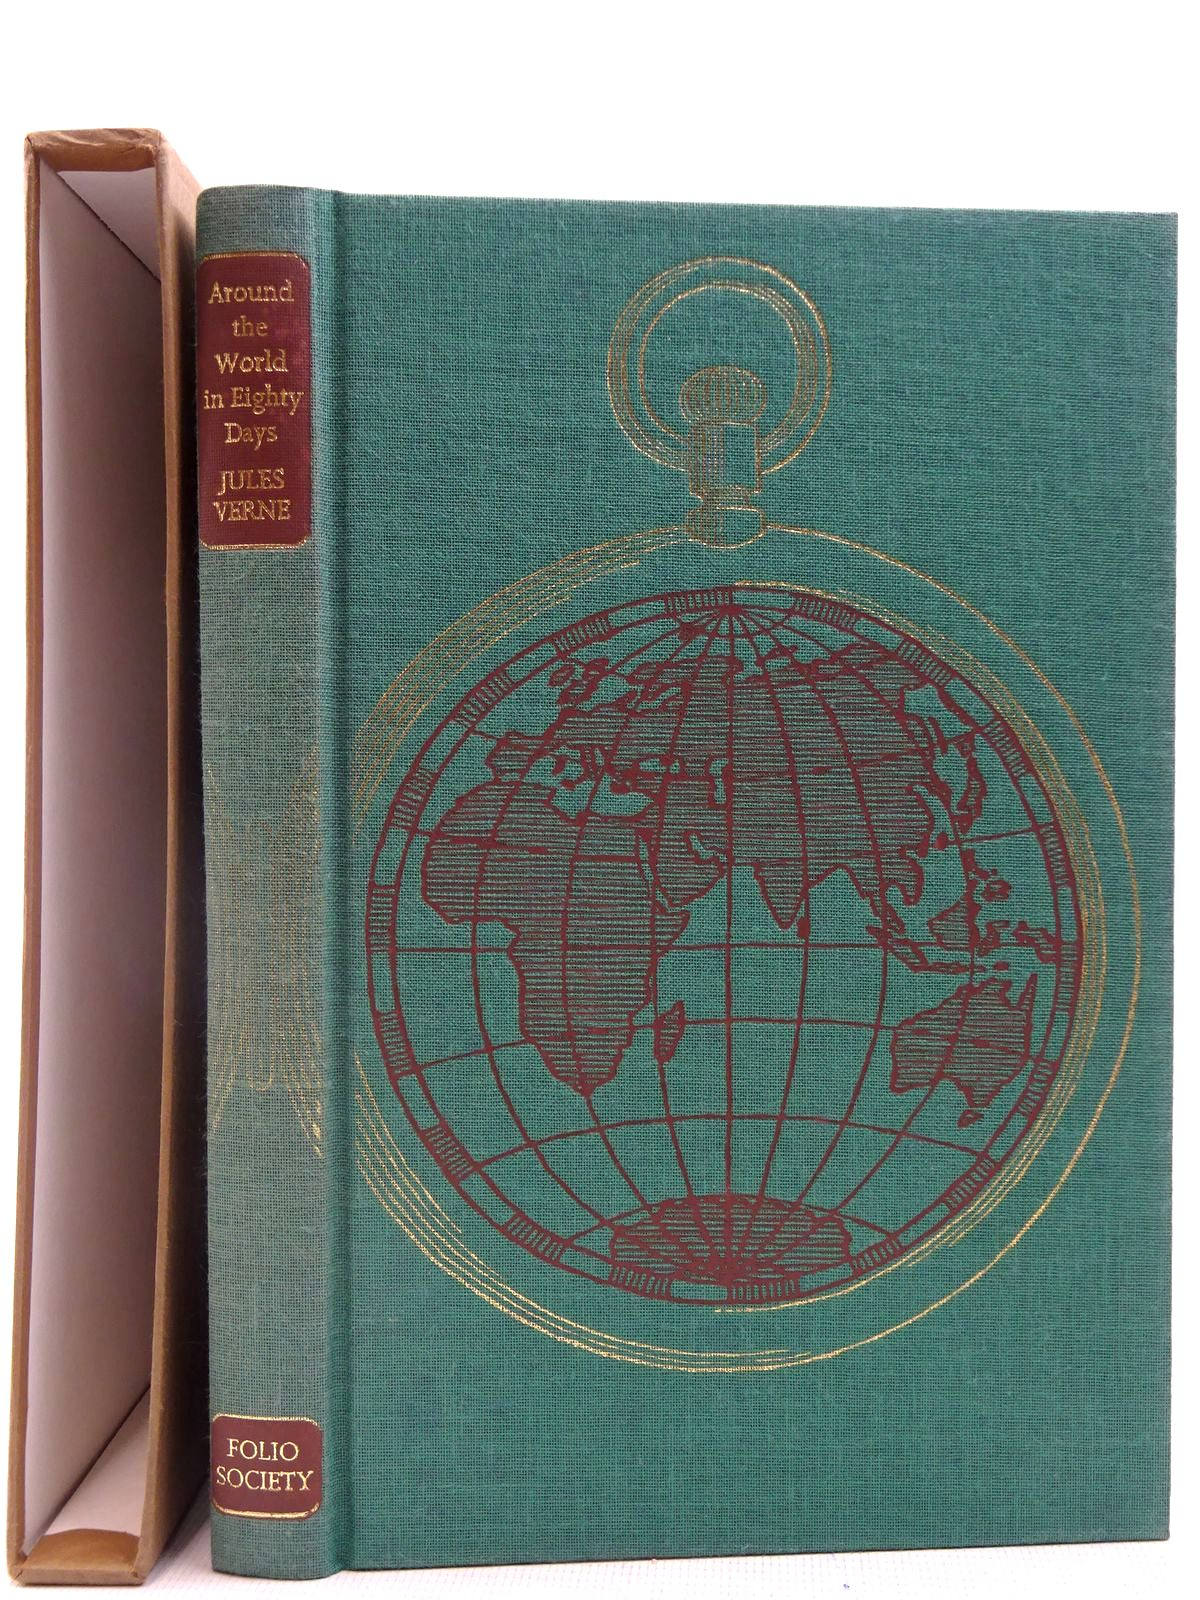 Photo of AROUND THE WORLD IN EIGHTY DAYS written by Verne, Jules illustrated by Brookes, Peter published by Folio Society (STOCK CODE: 2128319)  for sale by Stella & Rose's Books